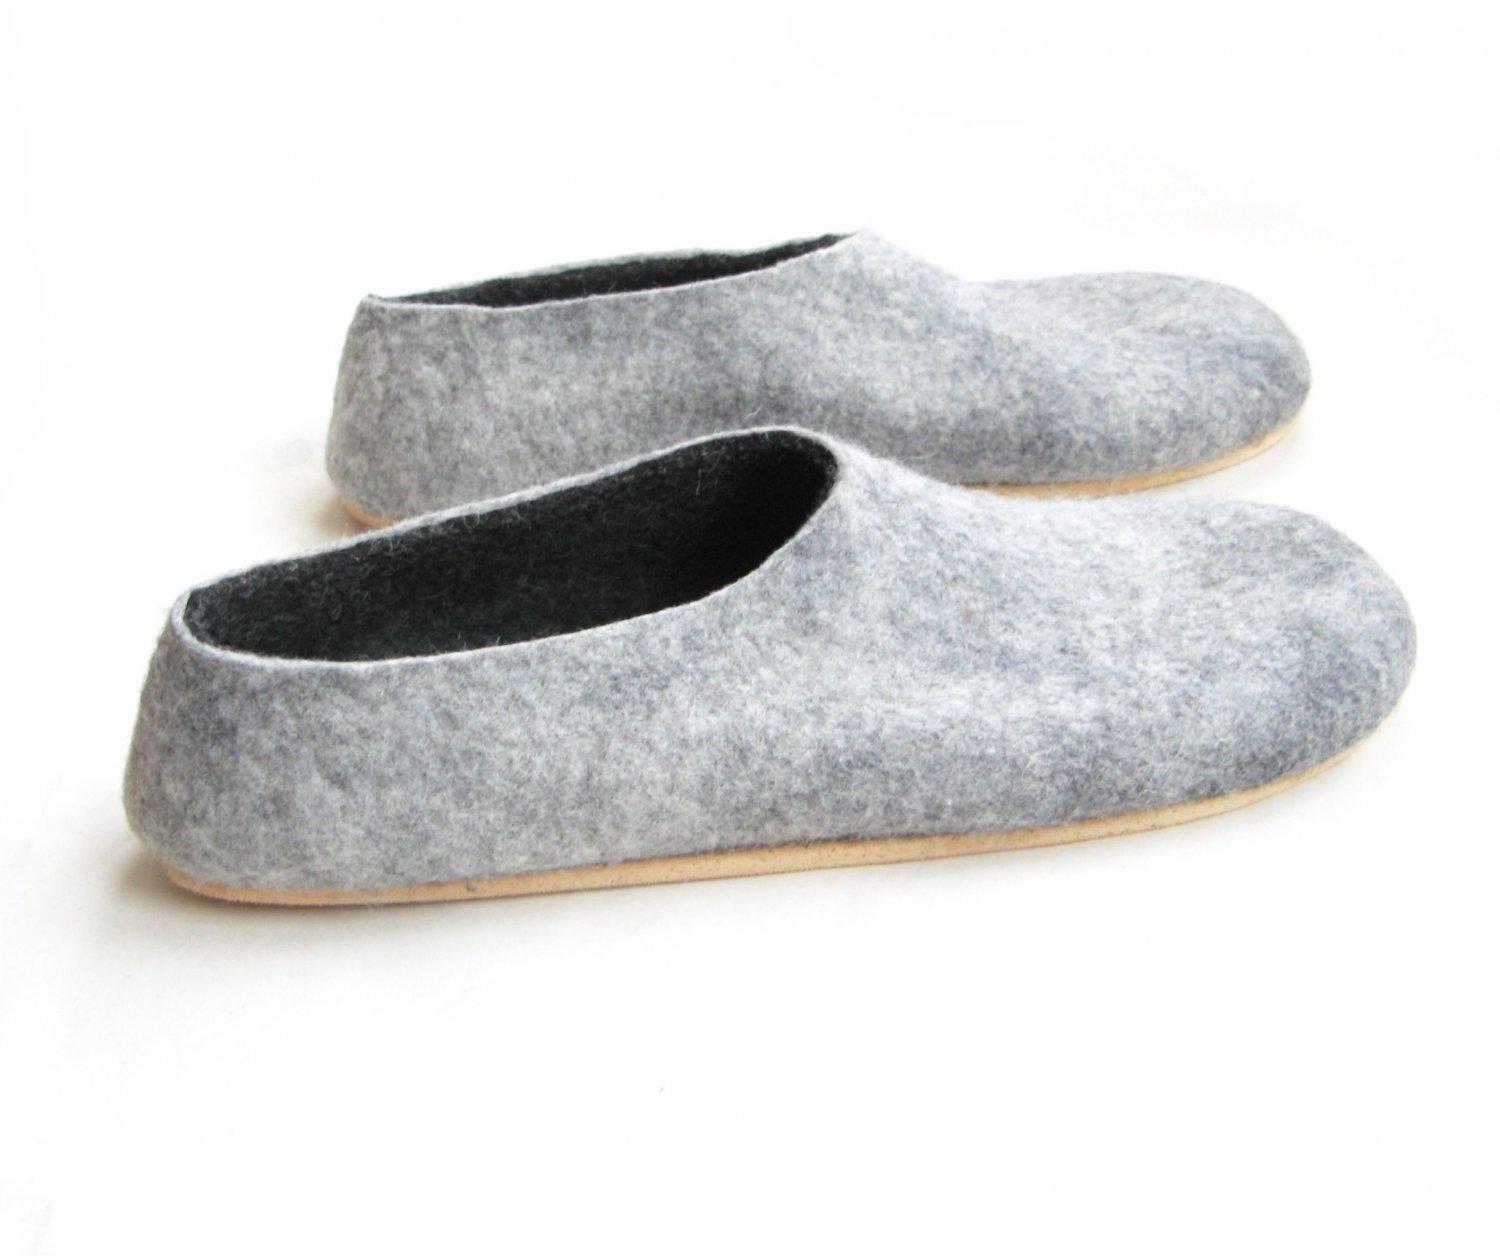 Men's felt wool slip-ons Grey Gray Cork Soled. Best seller